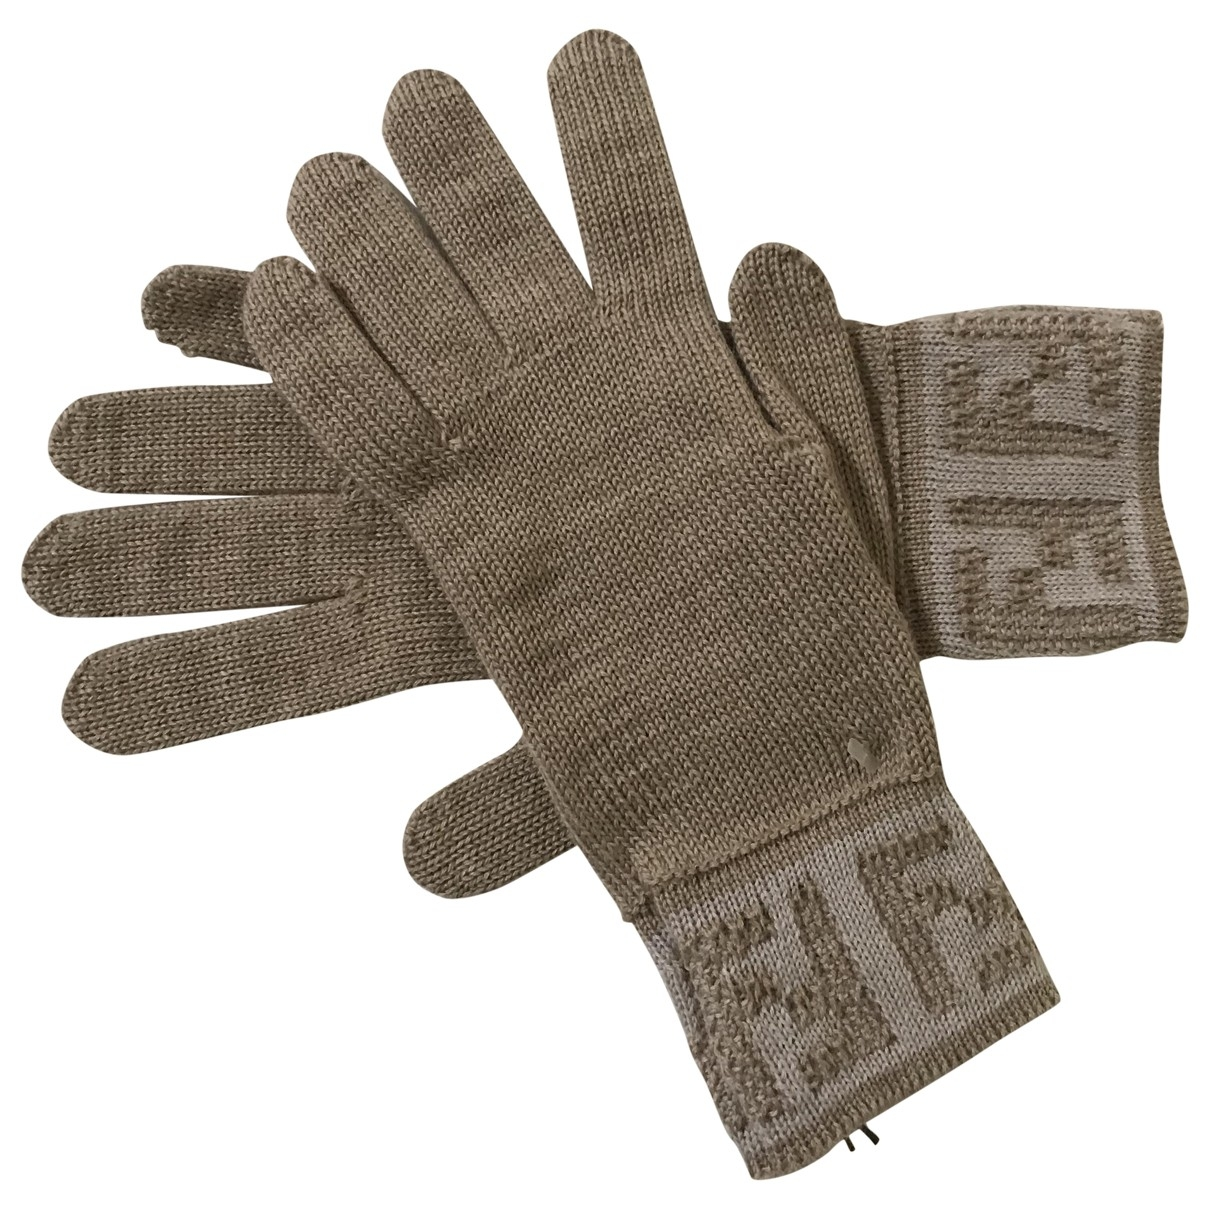 Fendi \N Beige Wool Gloves for Women M International